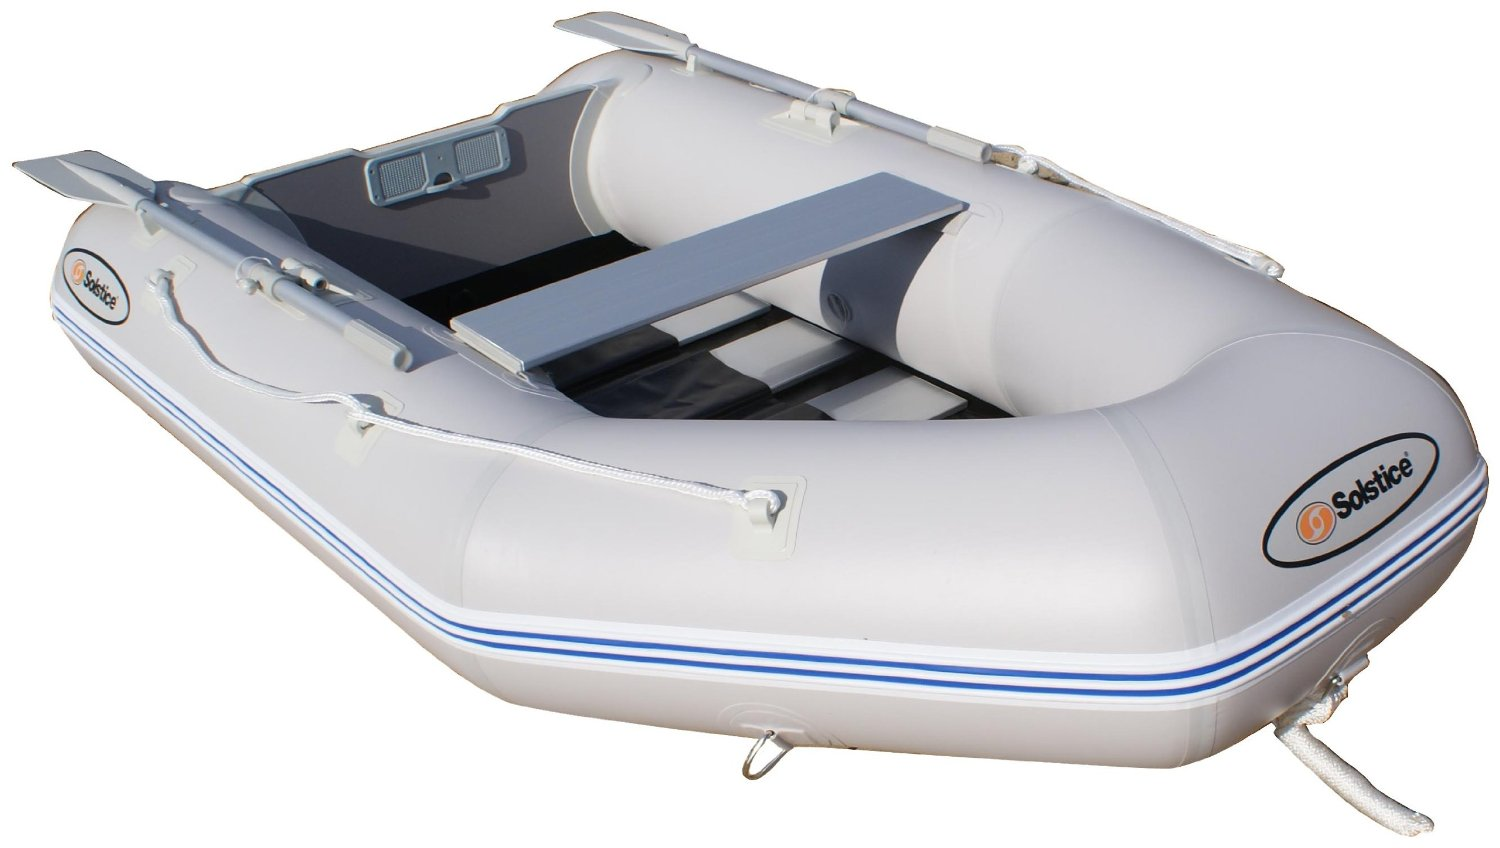 Solstice by Swimline Sportster 3-Person Runabout